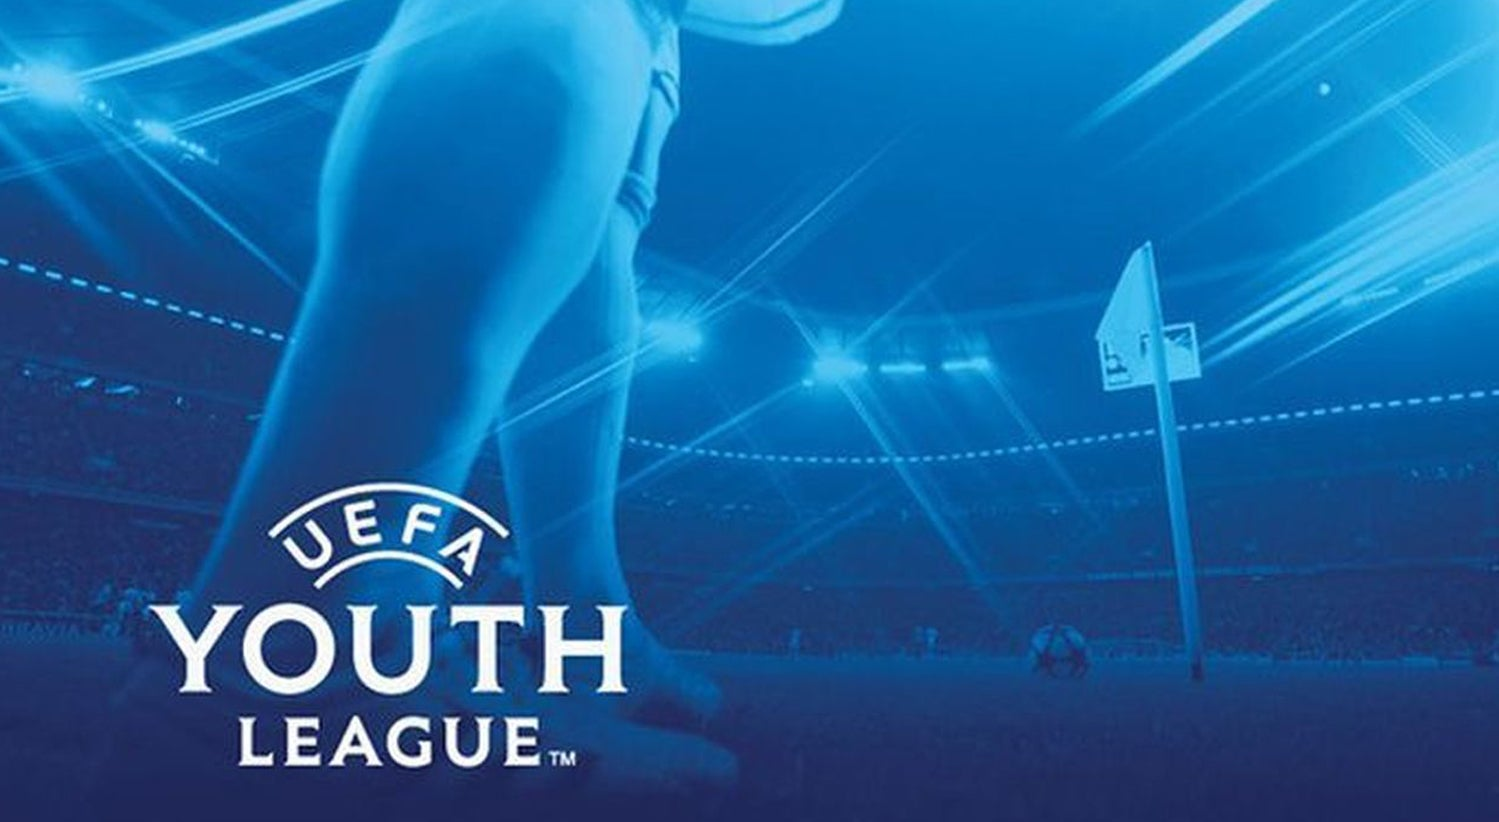 FC Porto estreia-se a vencer o Schalke 04 na Youth League